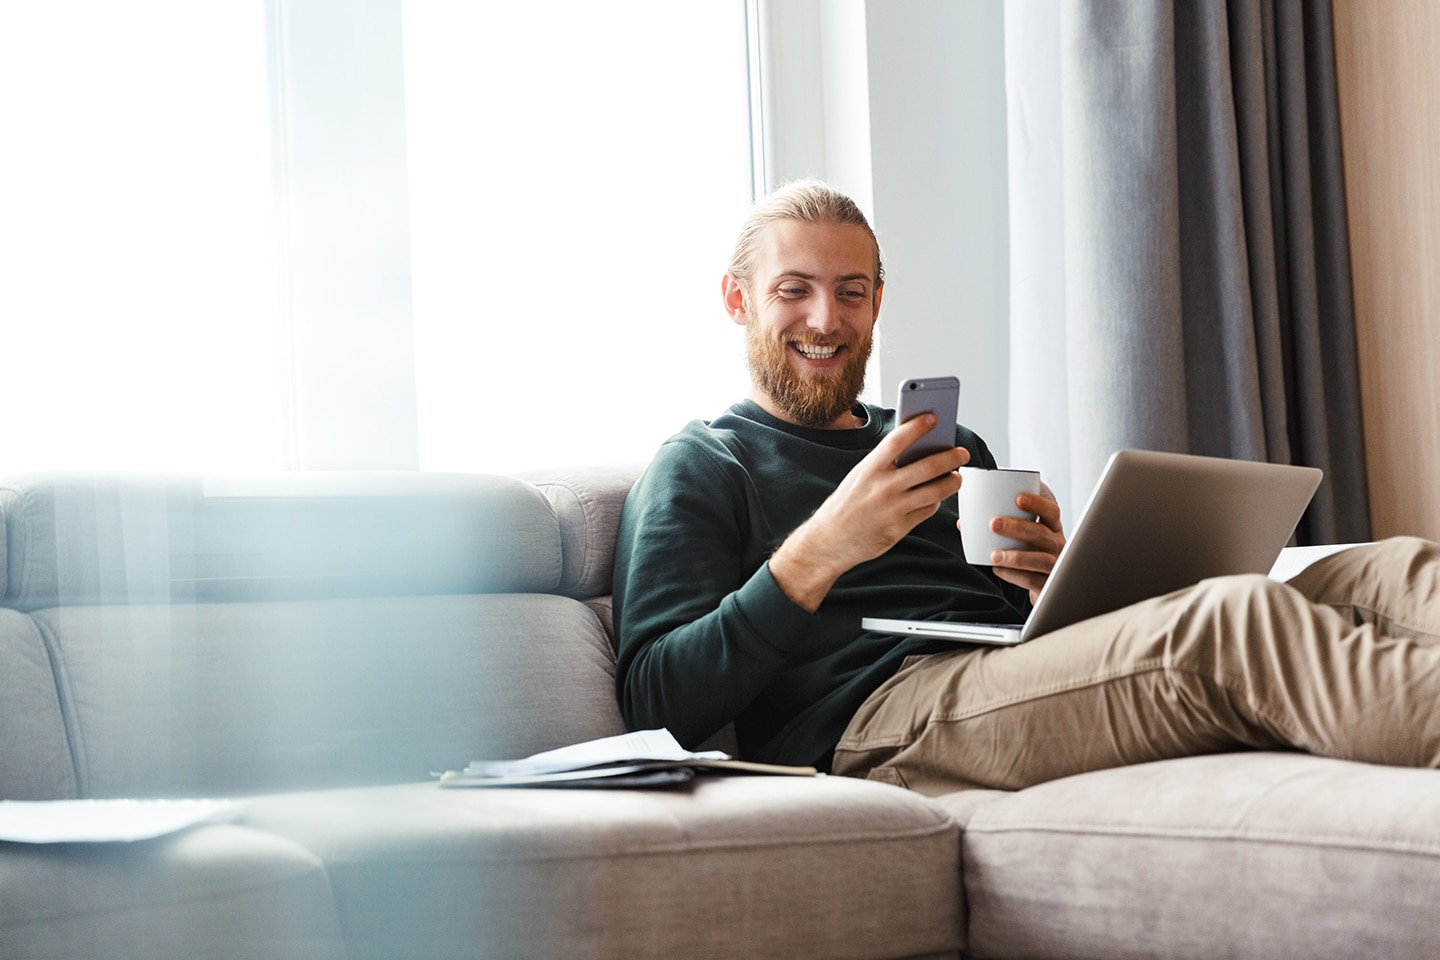 How covid has affected customer habits include technology at home